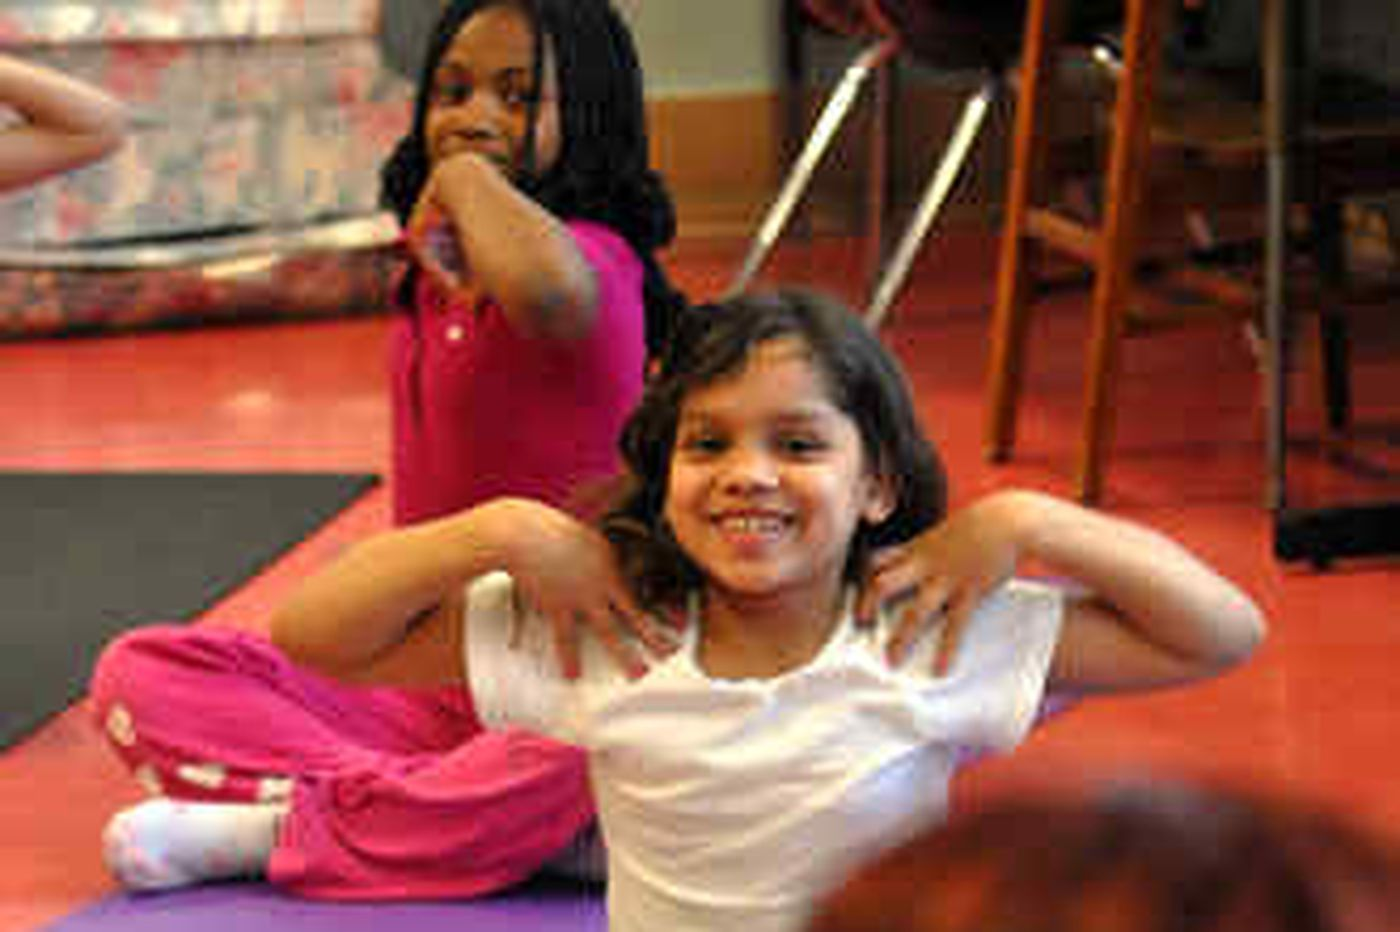 For fidgety crowd, yoga can be elementary